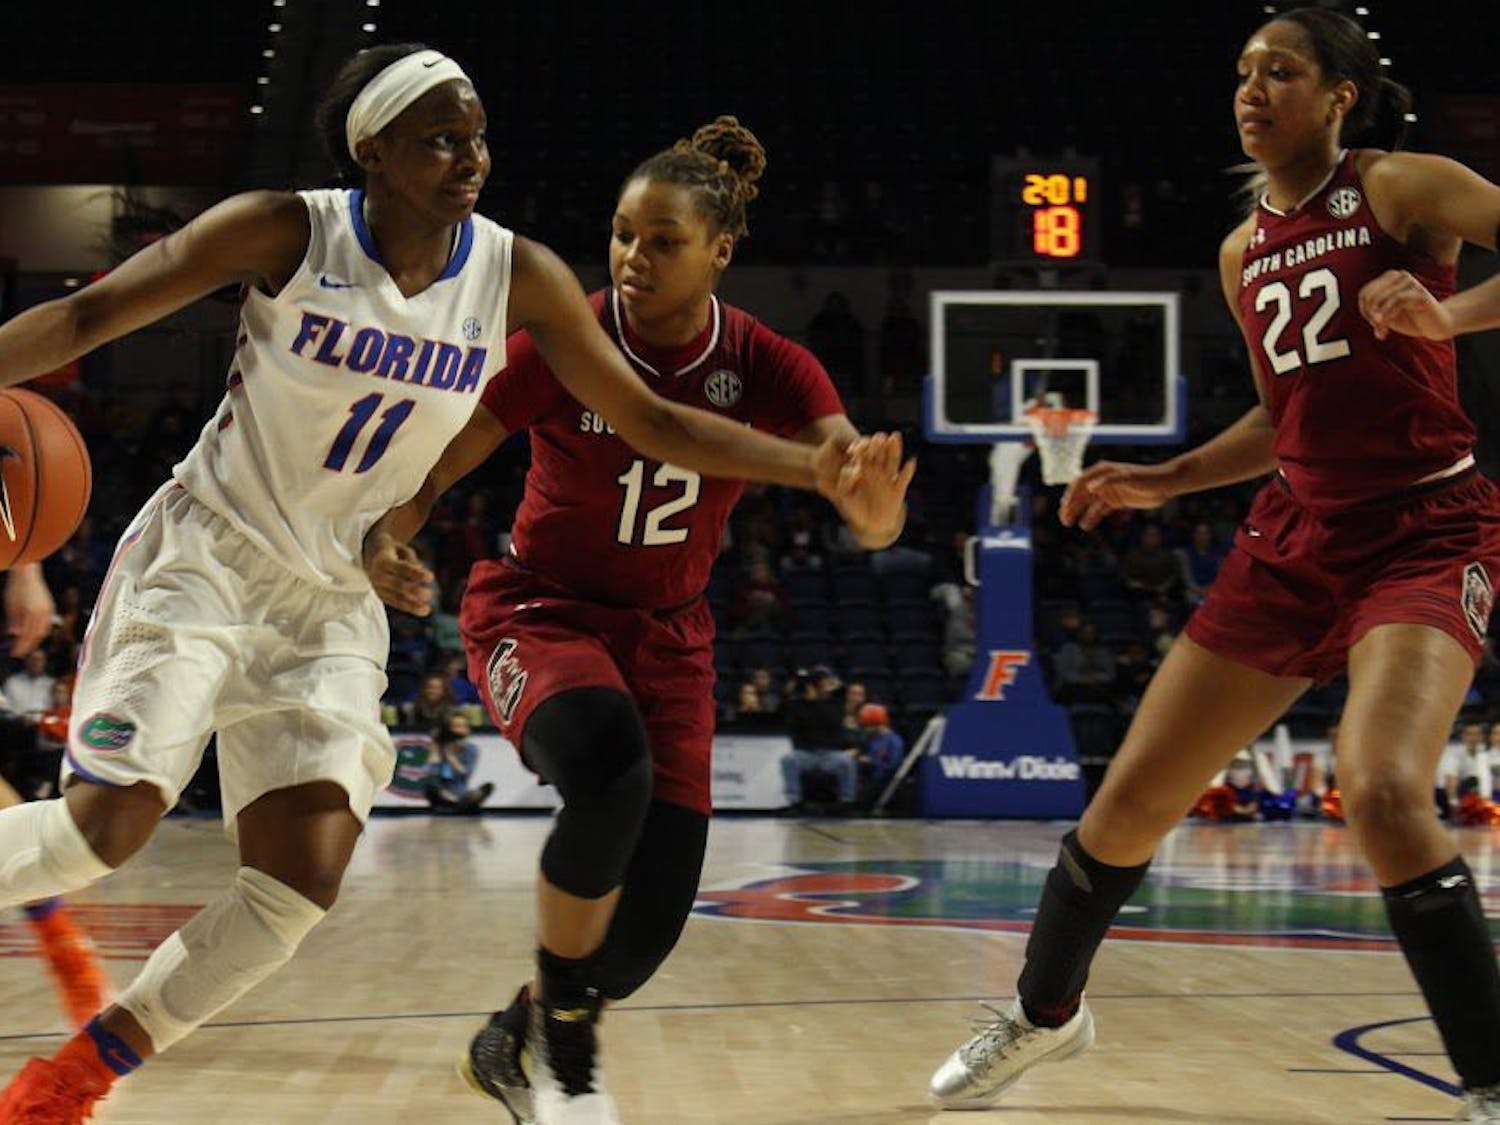 """Florida guard Dyandria Anderson, who set a new career high in points against Oklahoma, said while she and her teammates enjoyed arguably their best win of the season, they need to retain the lessons learned from it. """"We can't just forget about them,"""" Anderson said."""